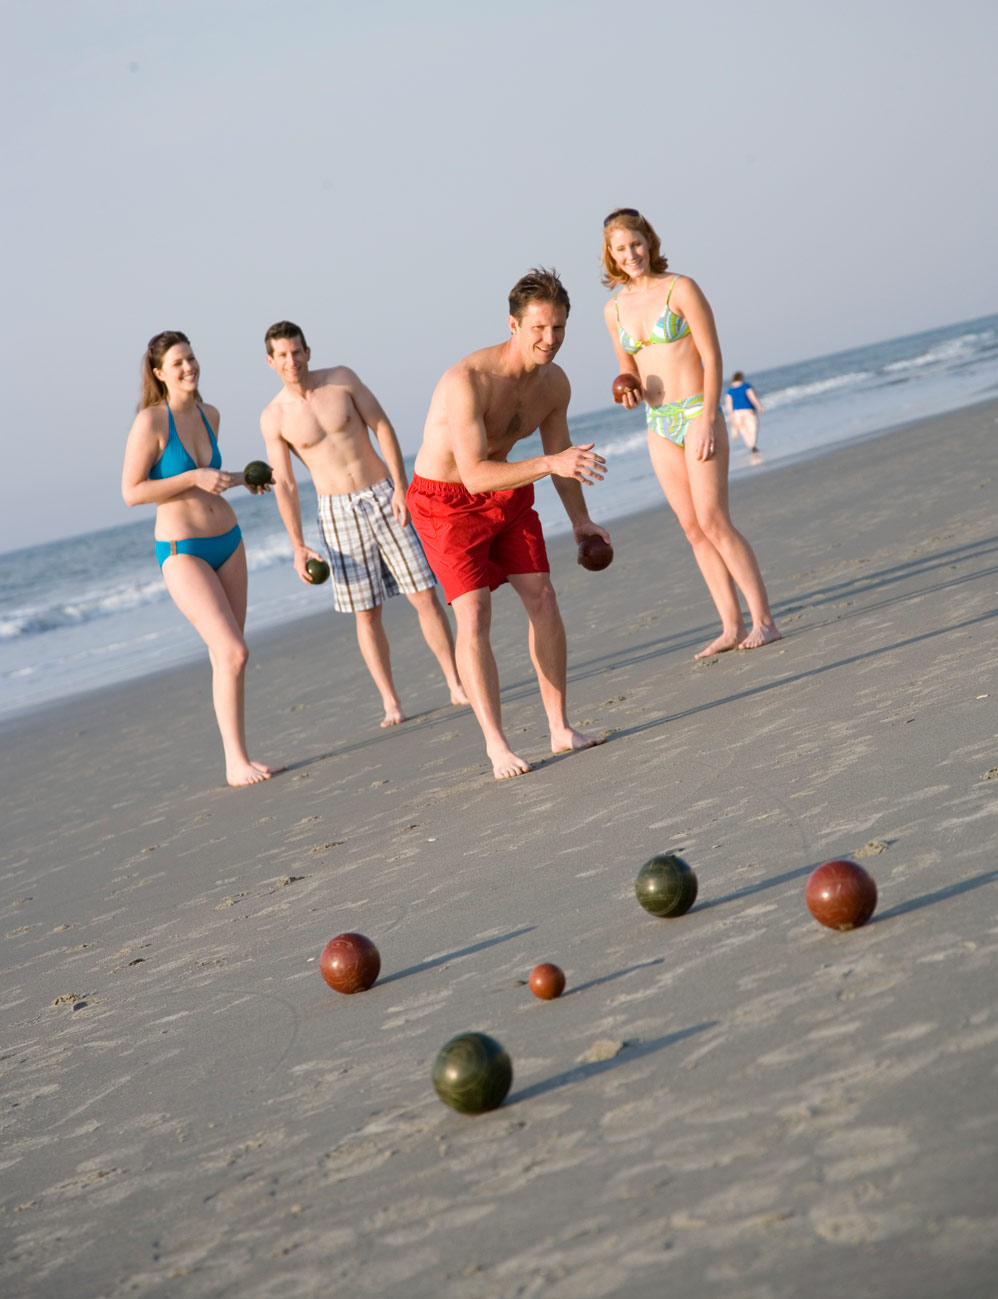 Bocce Ball at the beach in Myrtle Beach, SC